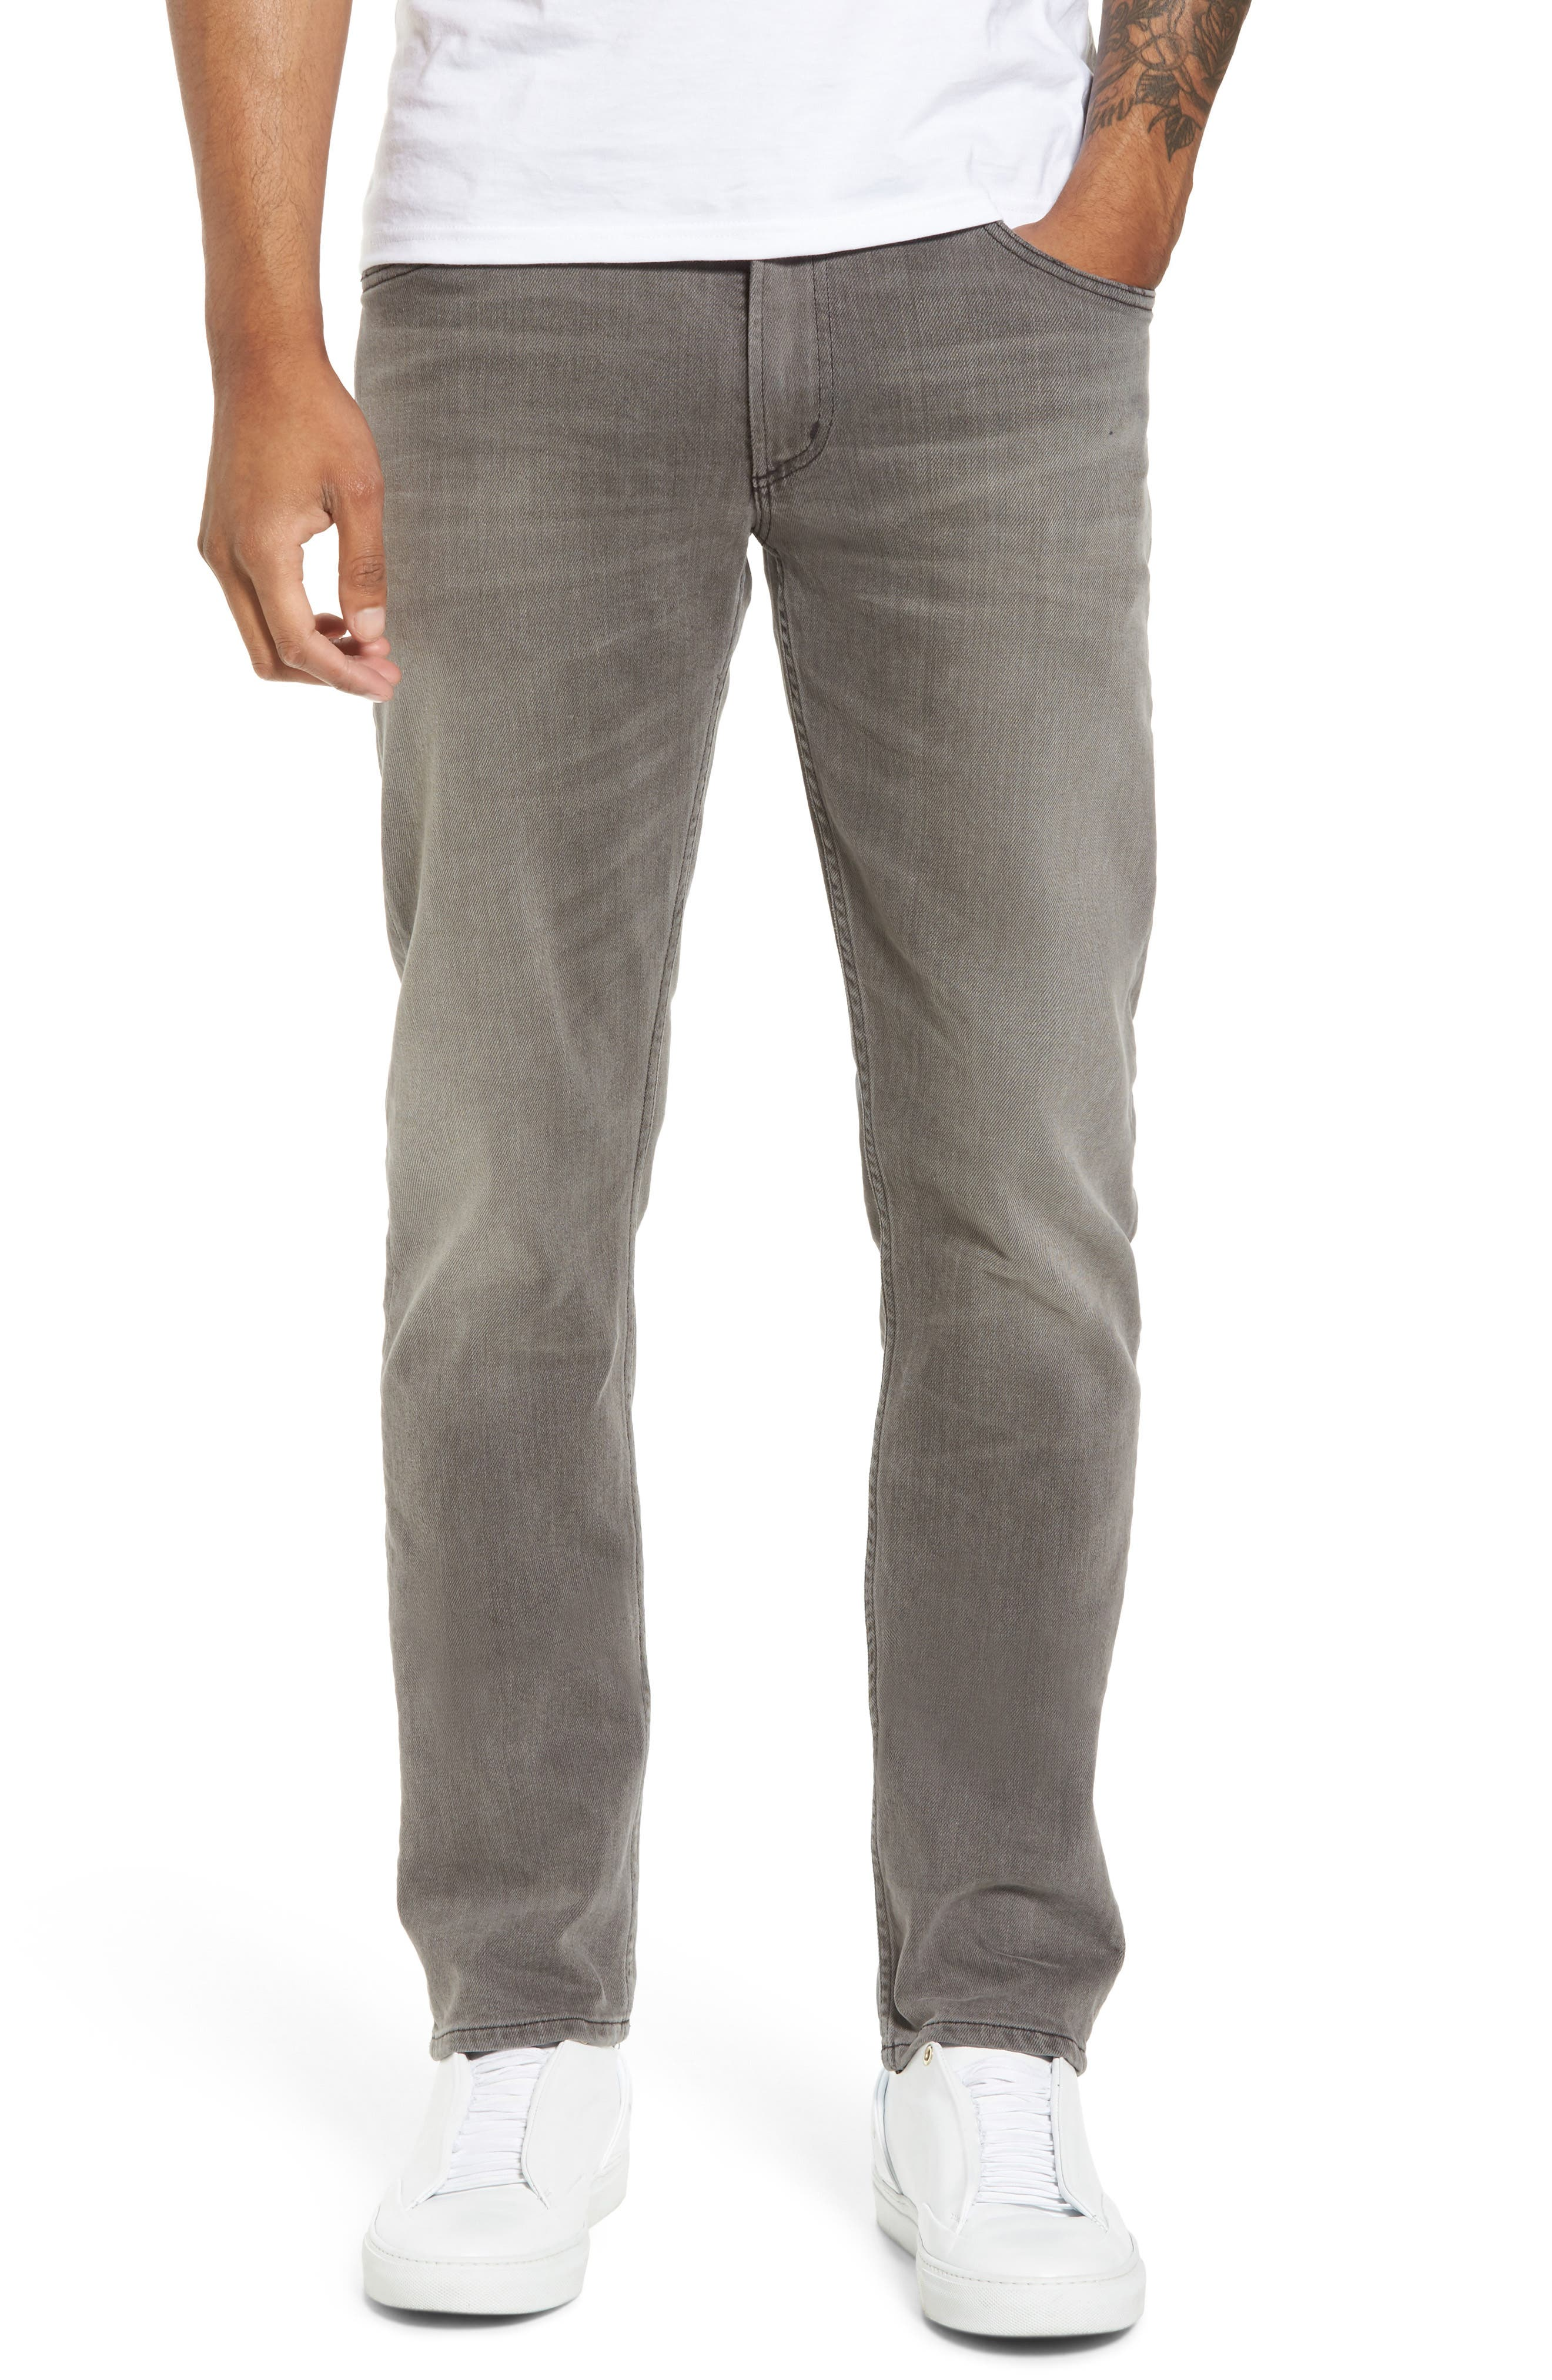 Bowery Slim Fit Jeans,                             Main thumbnail 1, color,                             LEON